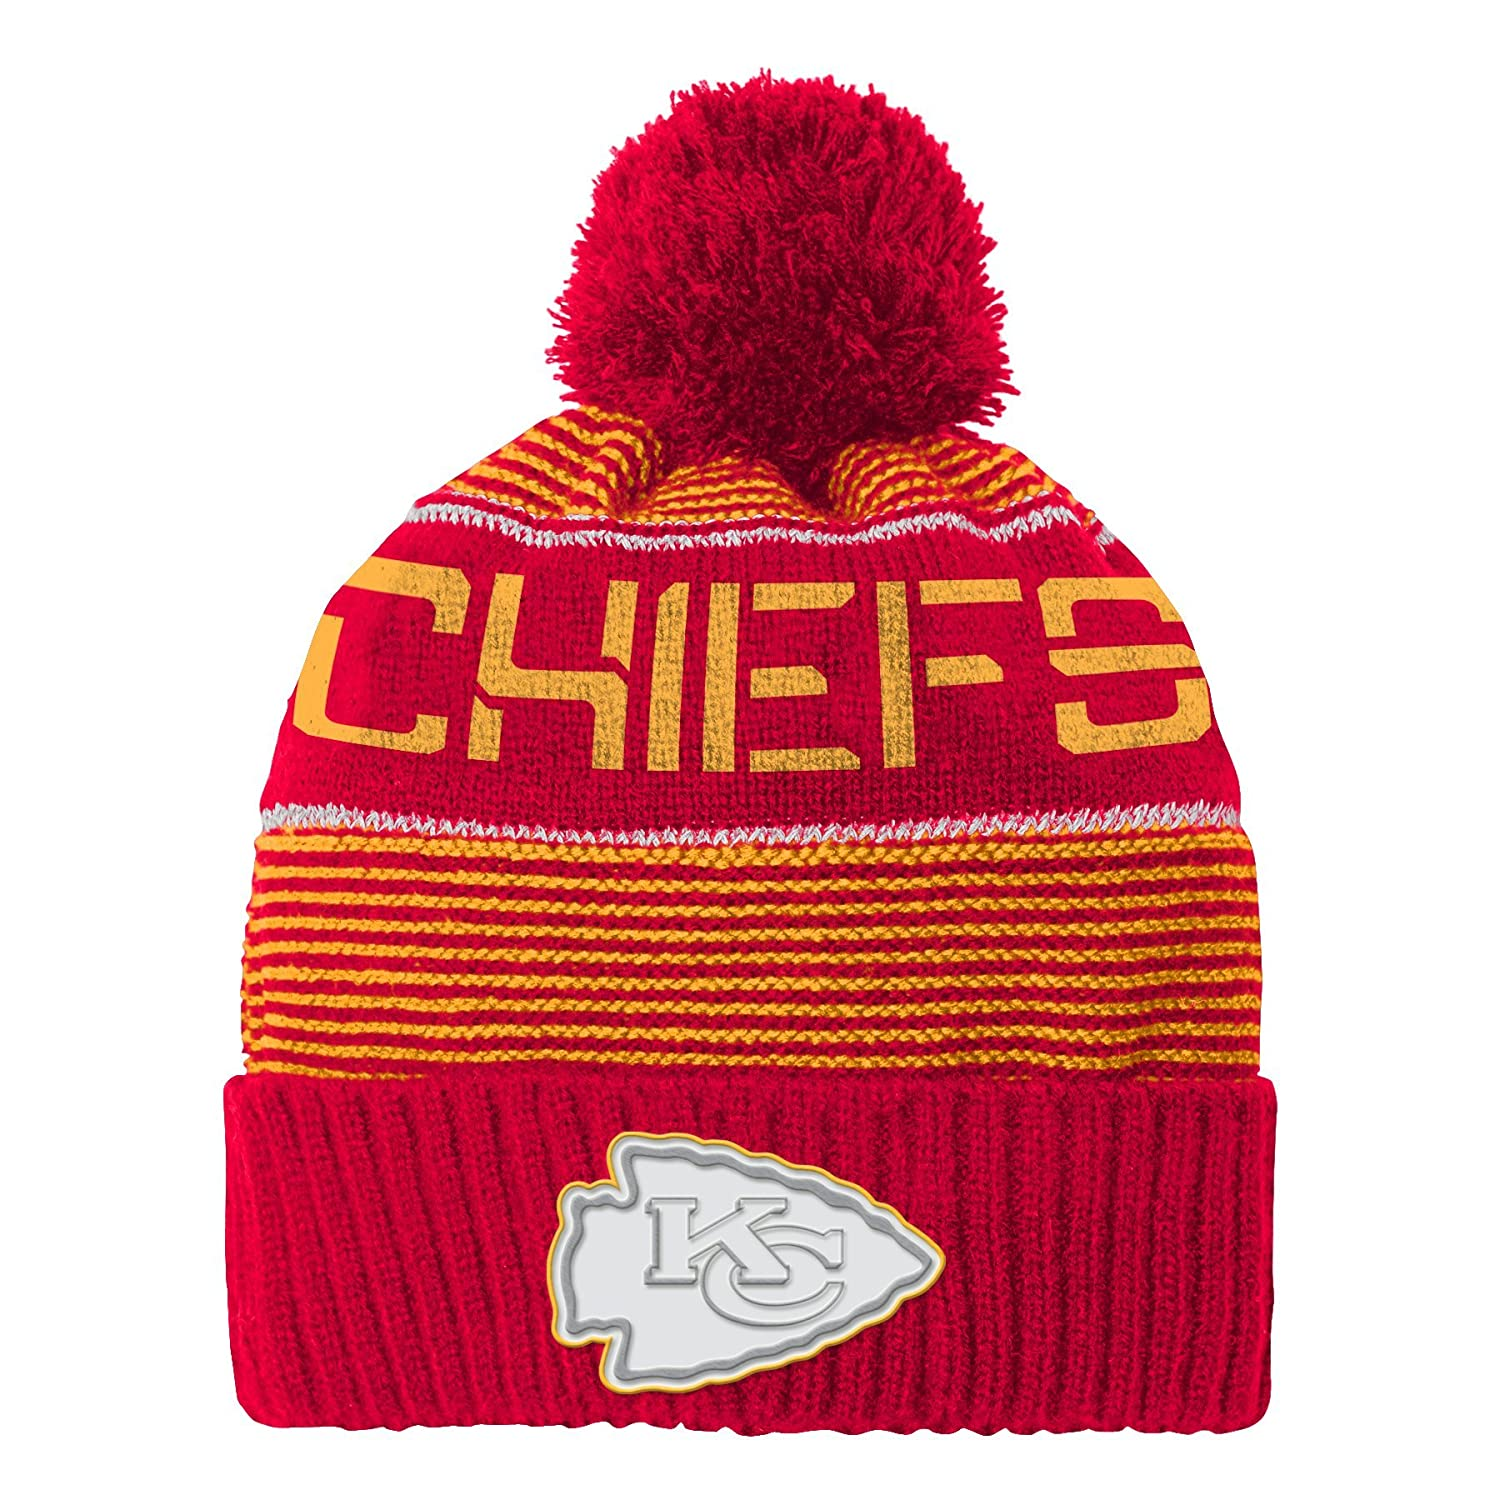 d1dbb816556 ... new era red 2018 nfl sideline cold weather historic sport knit hat  78e84 dcc45  shop outerstuff nfl youth boys magna reflective cuffed knit hat  with pom ...